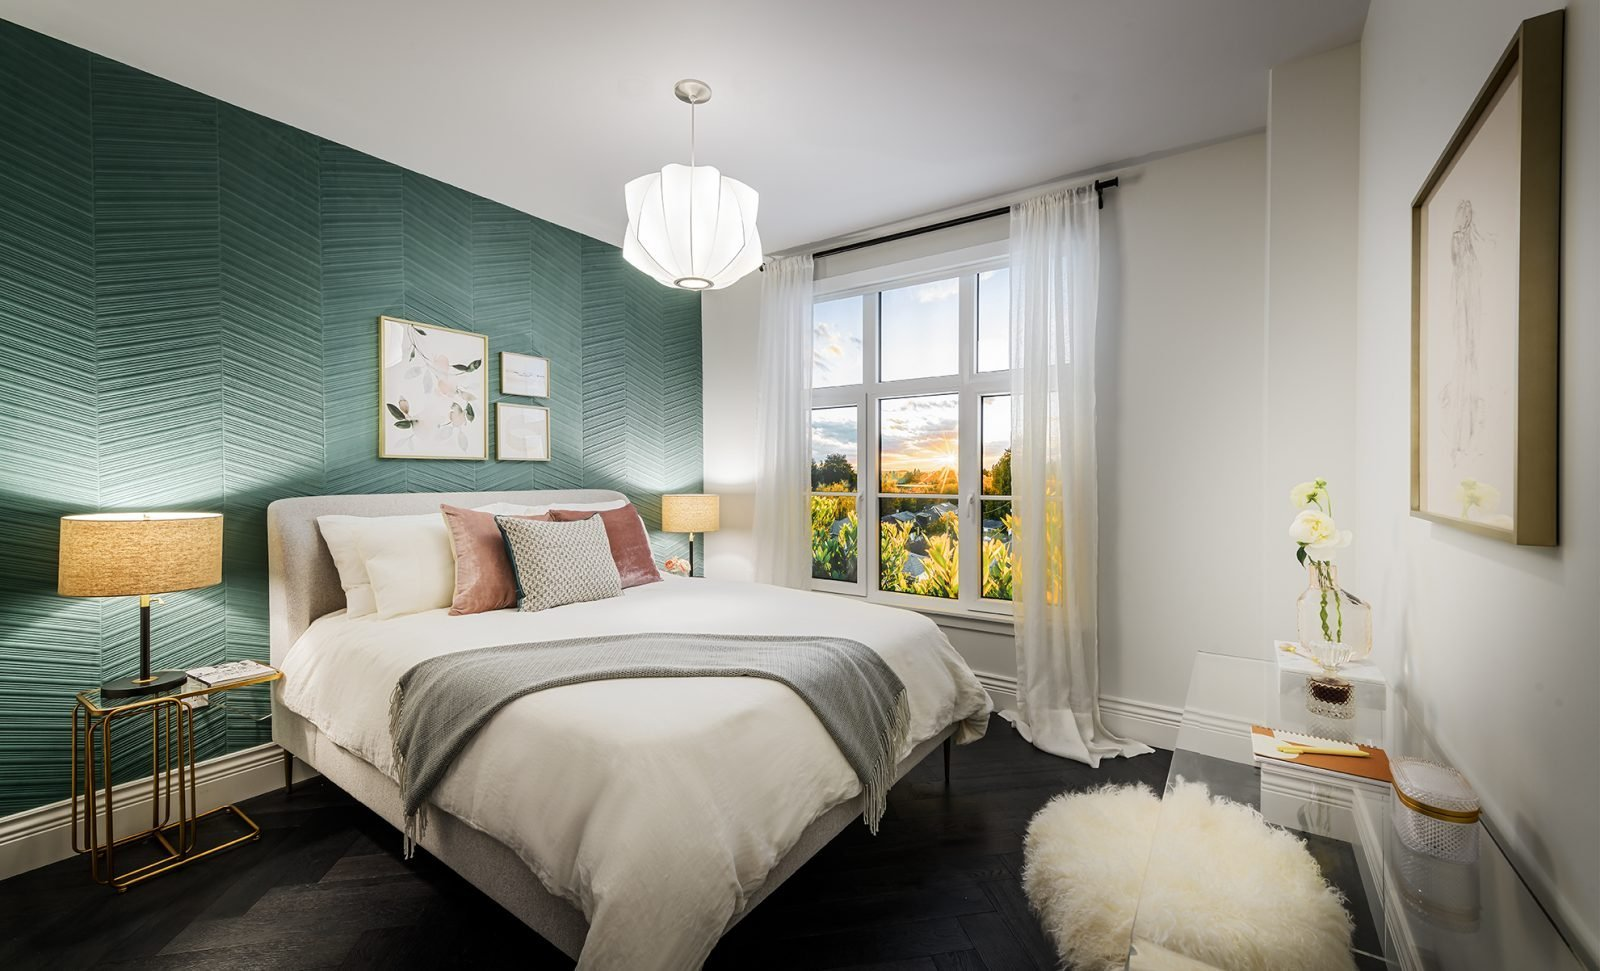 Chlo� Kerrisdale by Matchpoint Development - Bedroom!